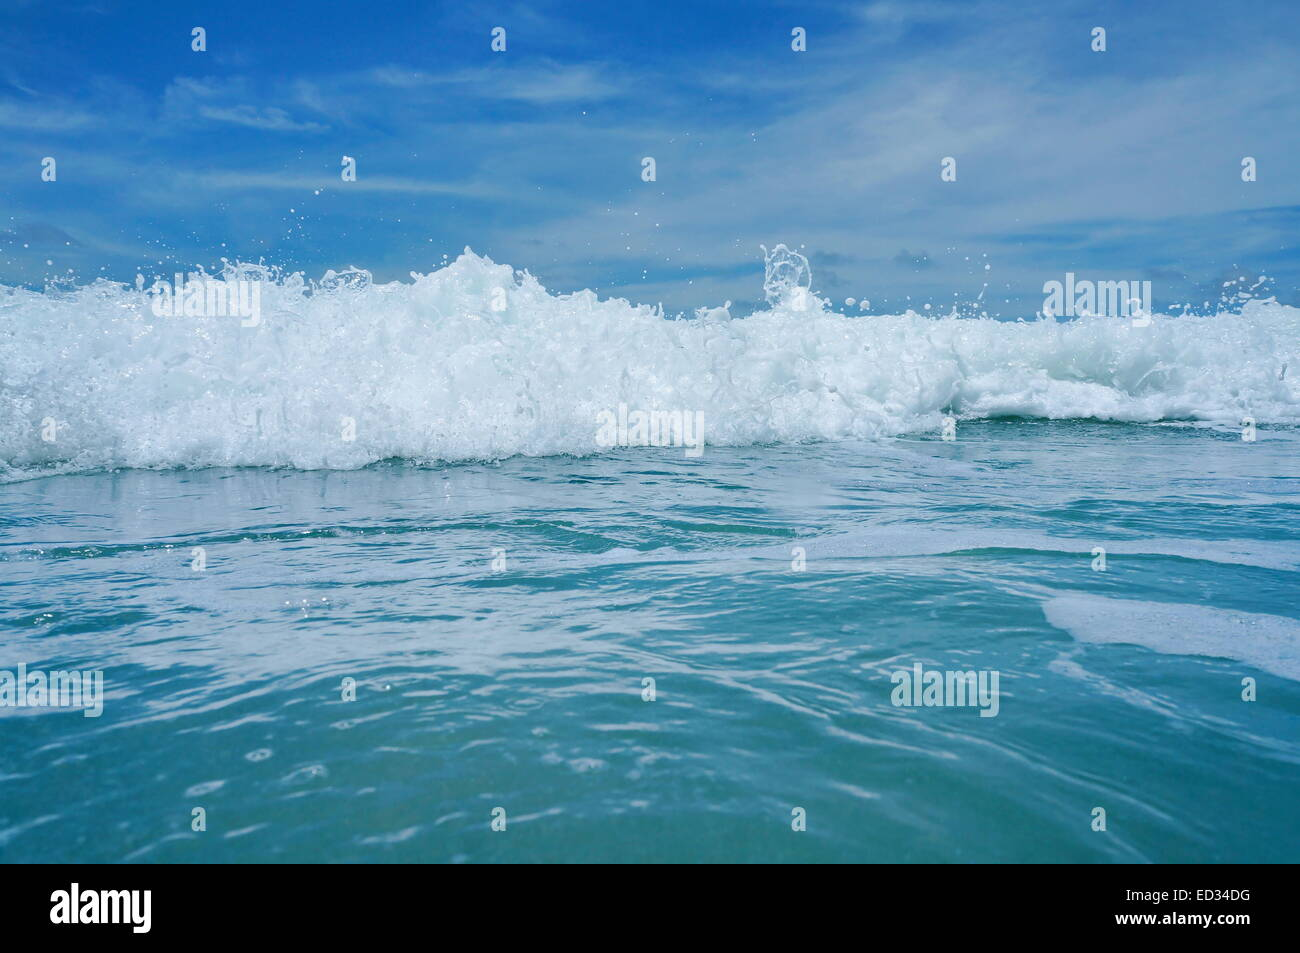 Close up on a breaking wave viewed from the sea surface - Stock Image